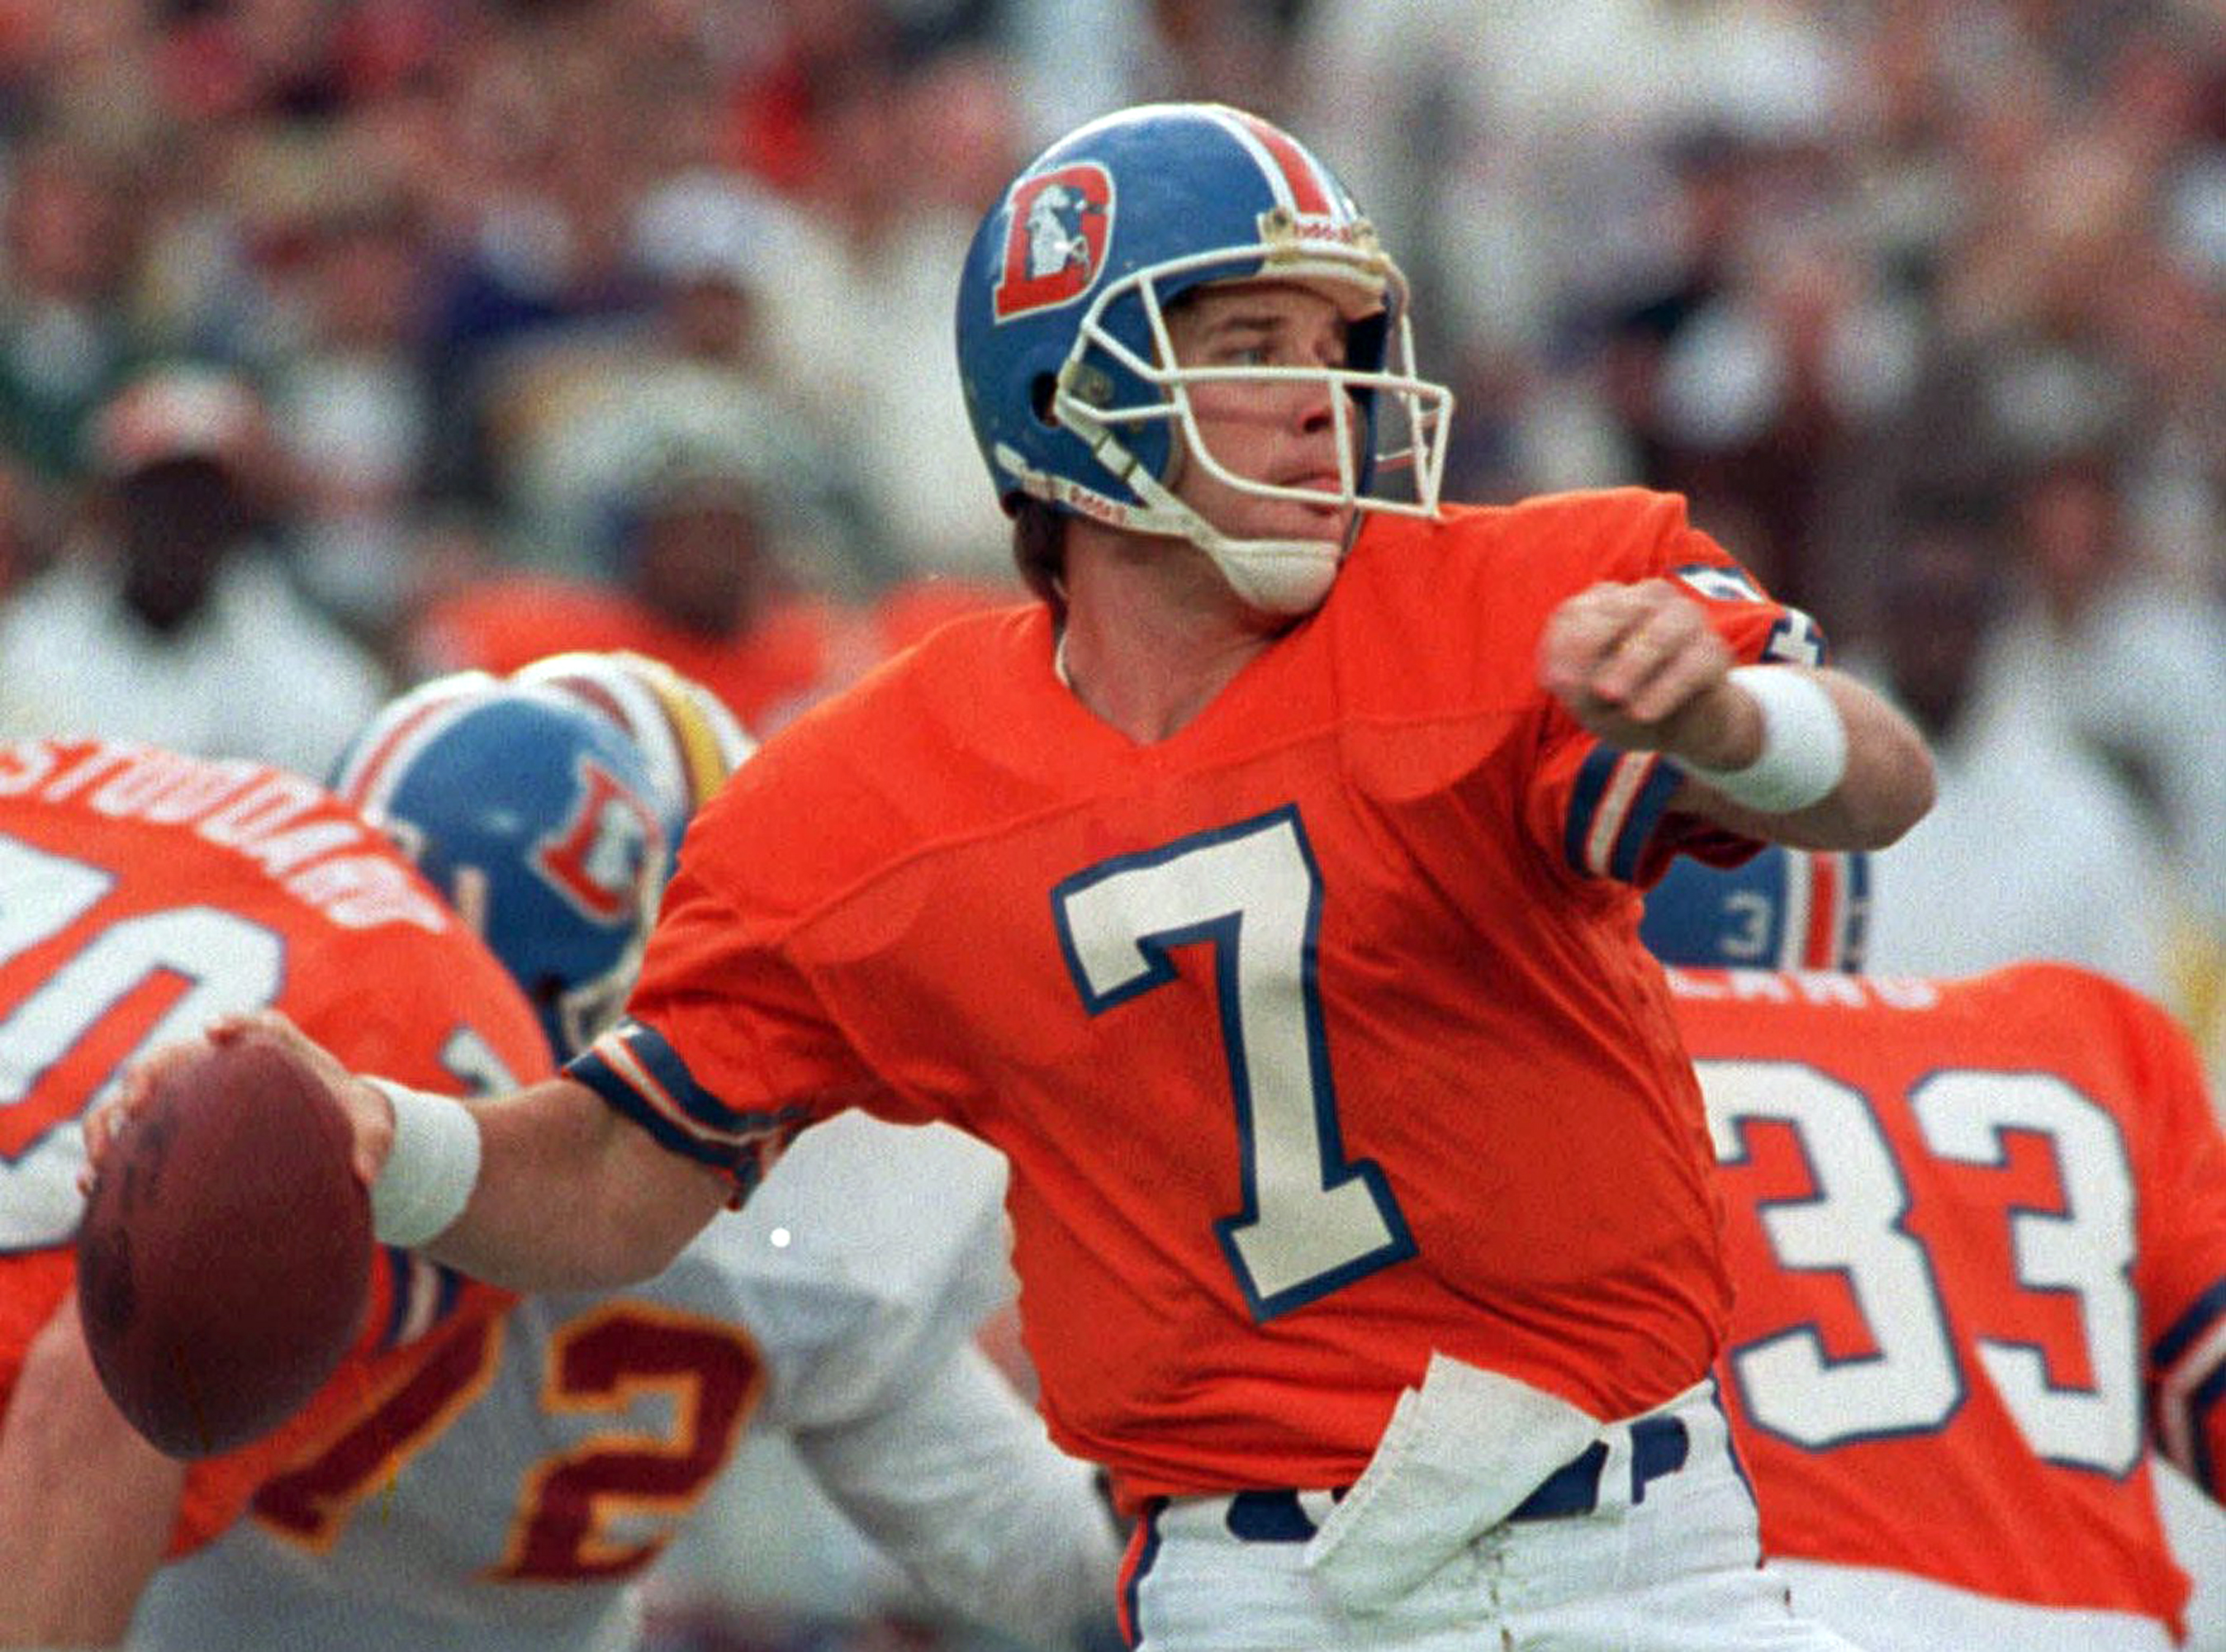 FILE - In this Jan. 31, 1988, file photo, Denver Broncos quarterback John Elway winds up to let go of a 56-yard touchdown pass to wide receiver Ricky Nattiel in the first quarter of Super Bowl XXII against the Washington Redskins in San Diego, Calif. Elwa